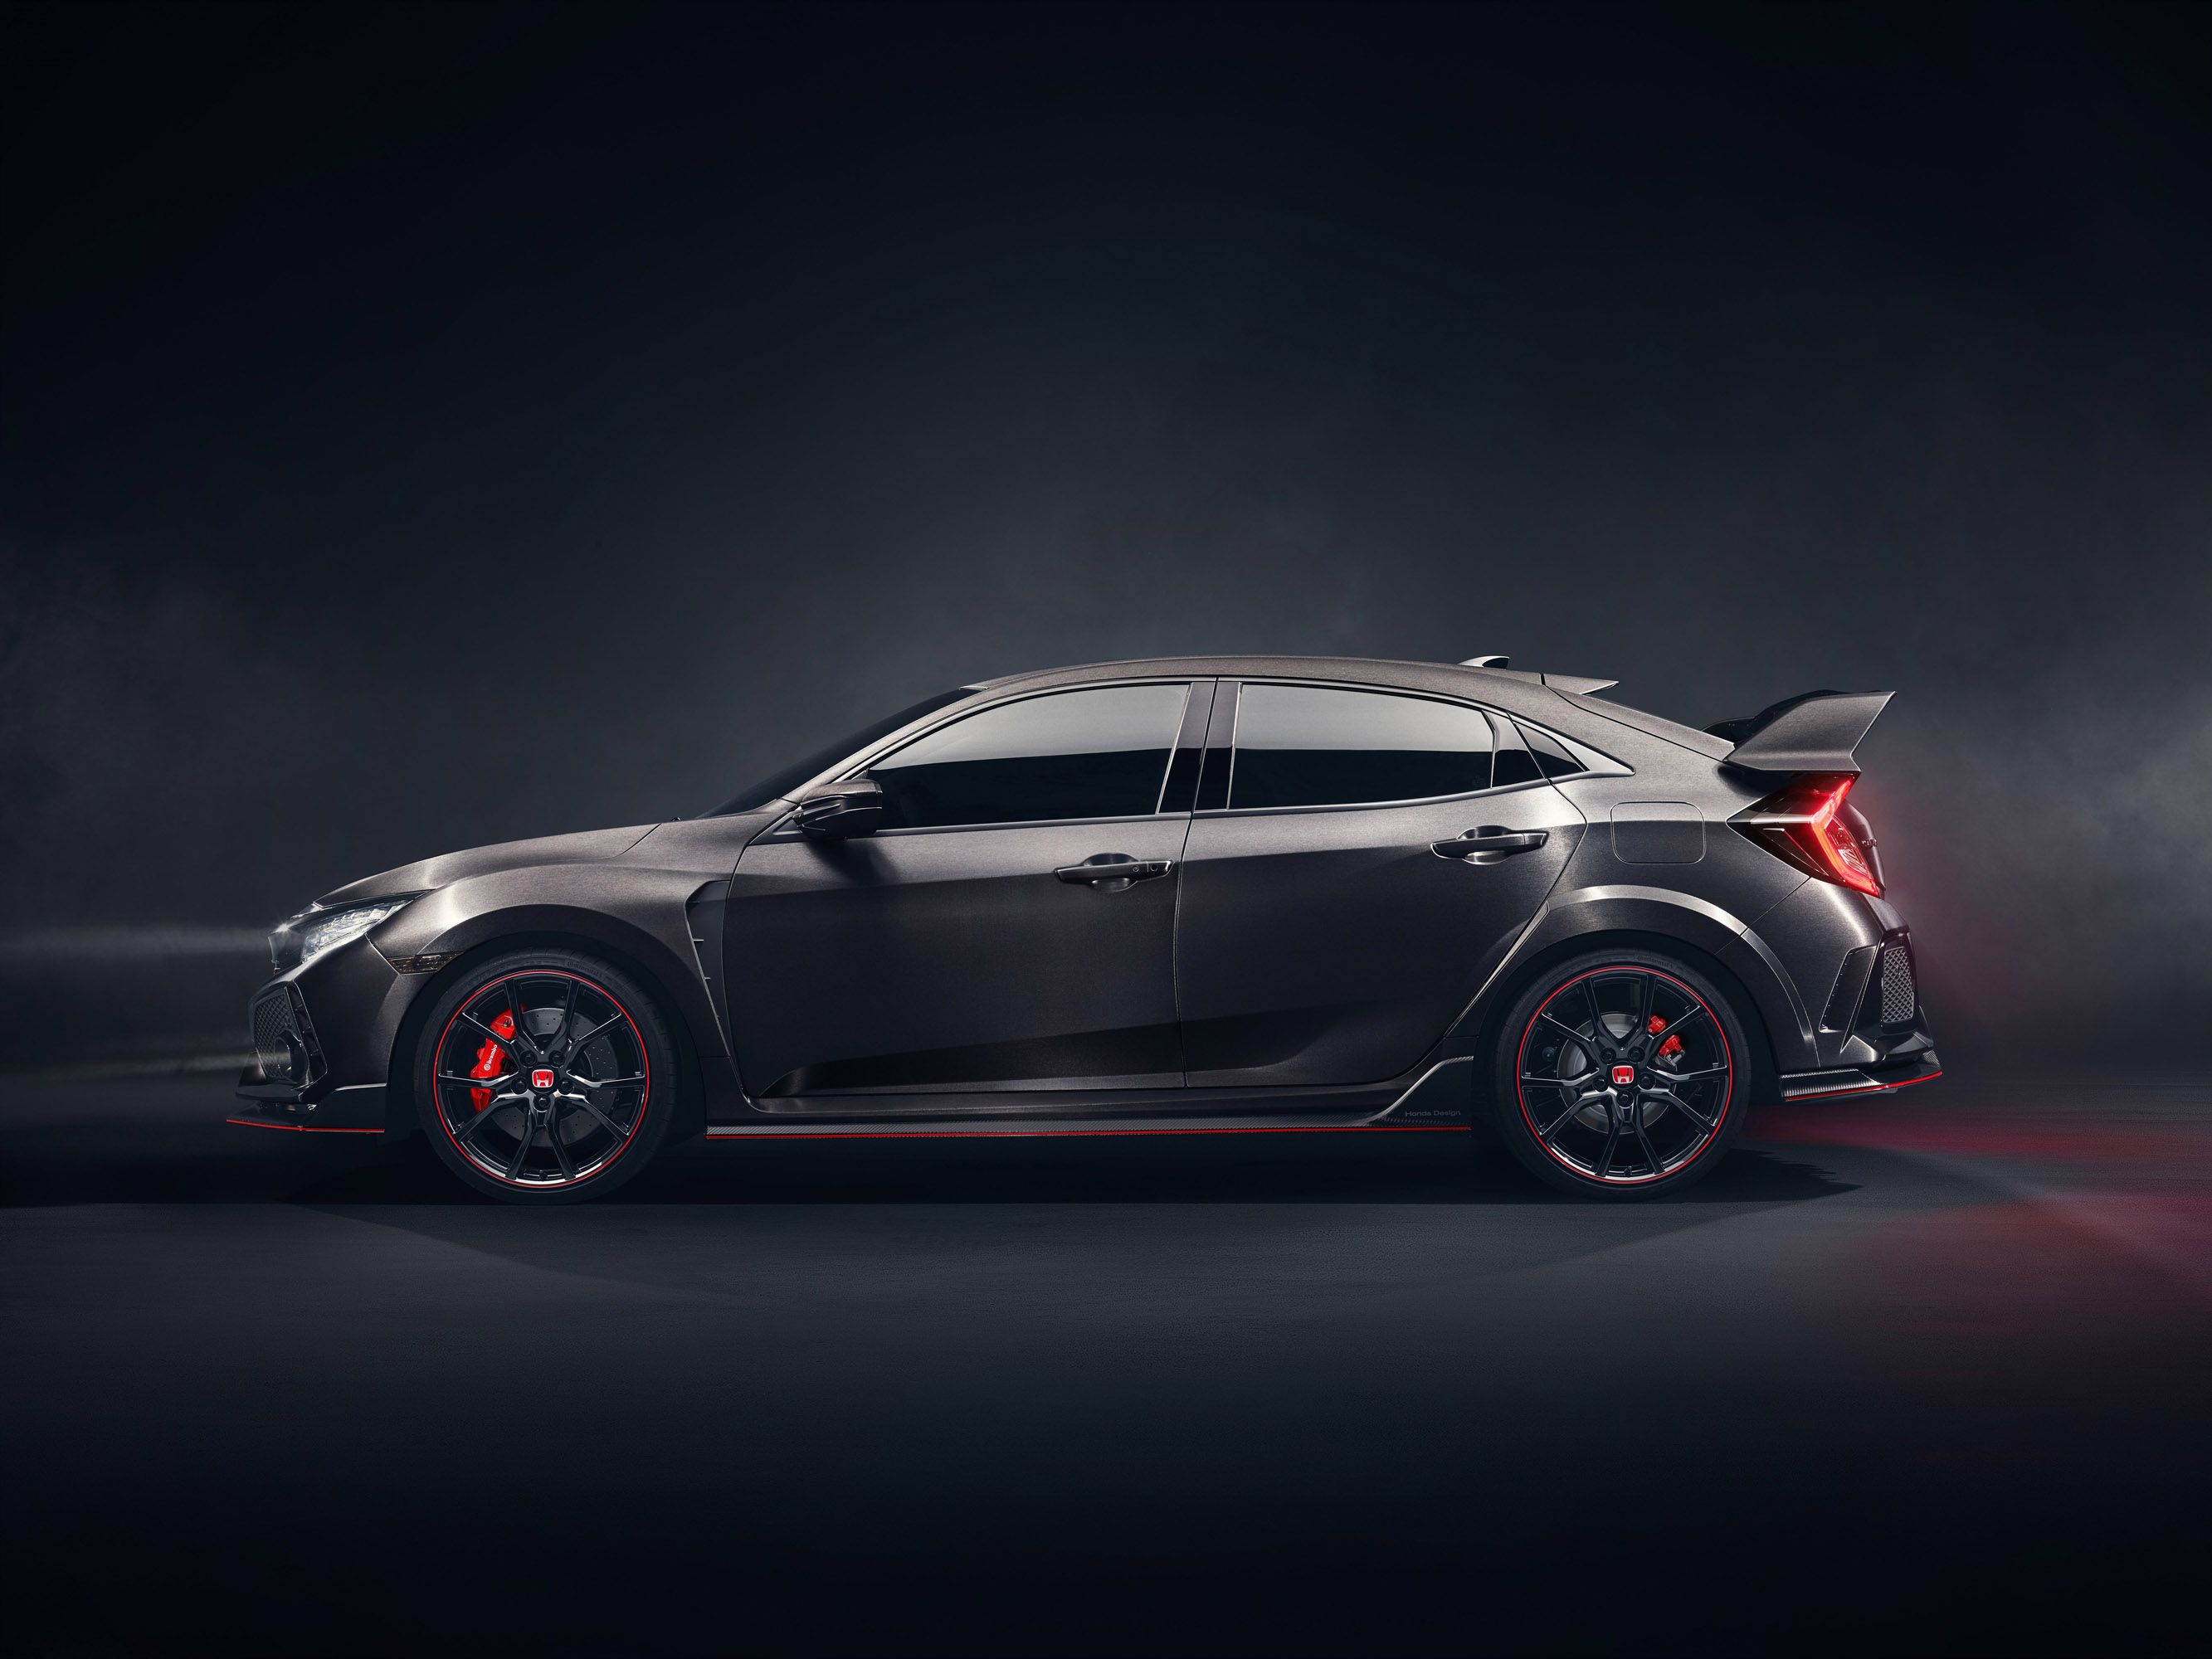 Honda team reveals the 2017 Civic Type R